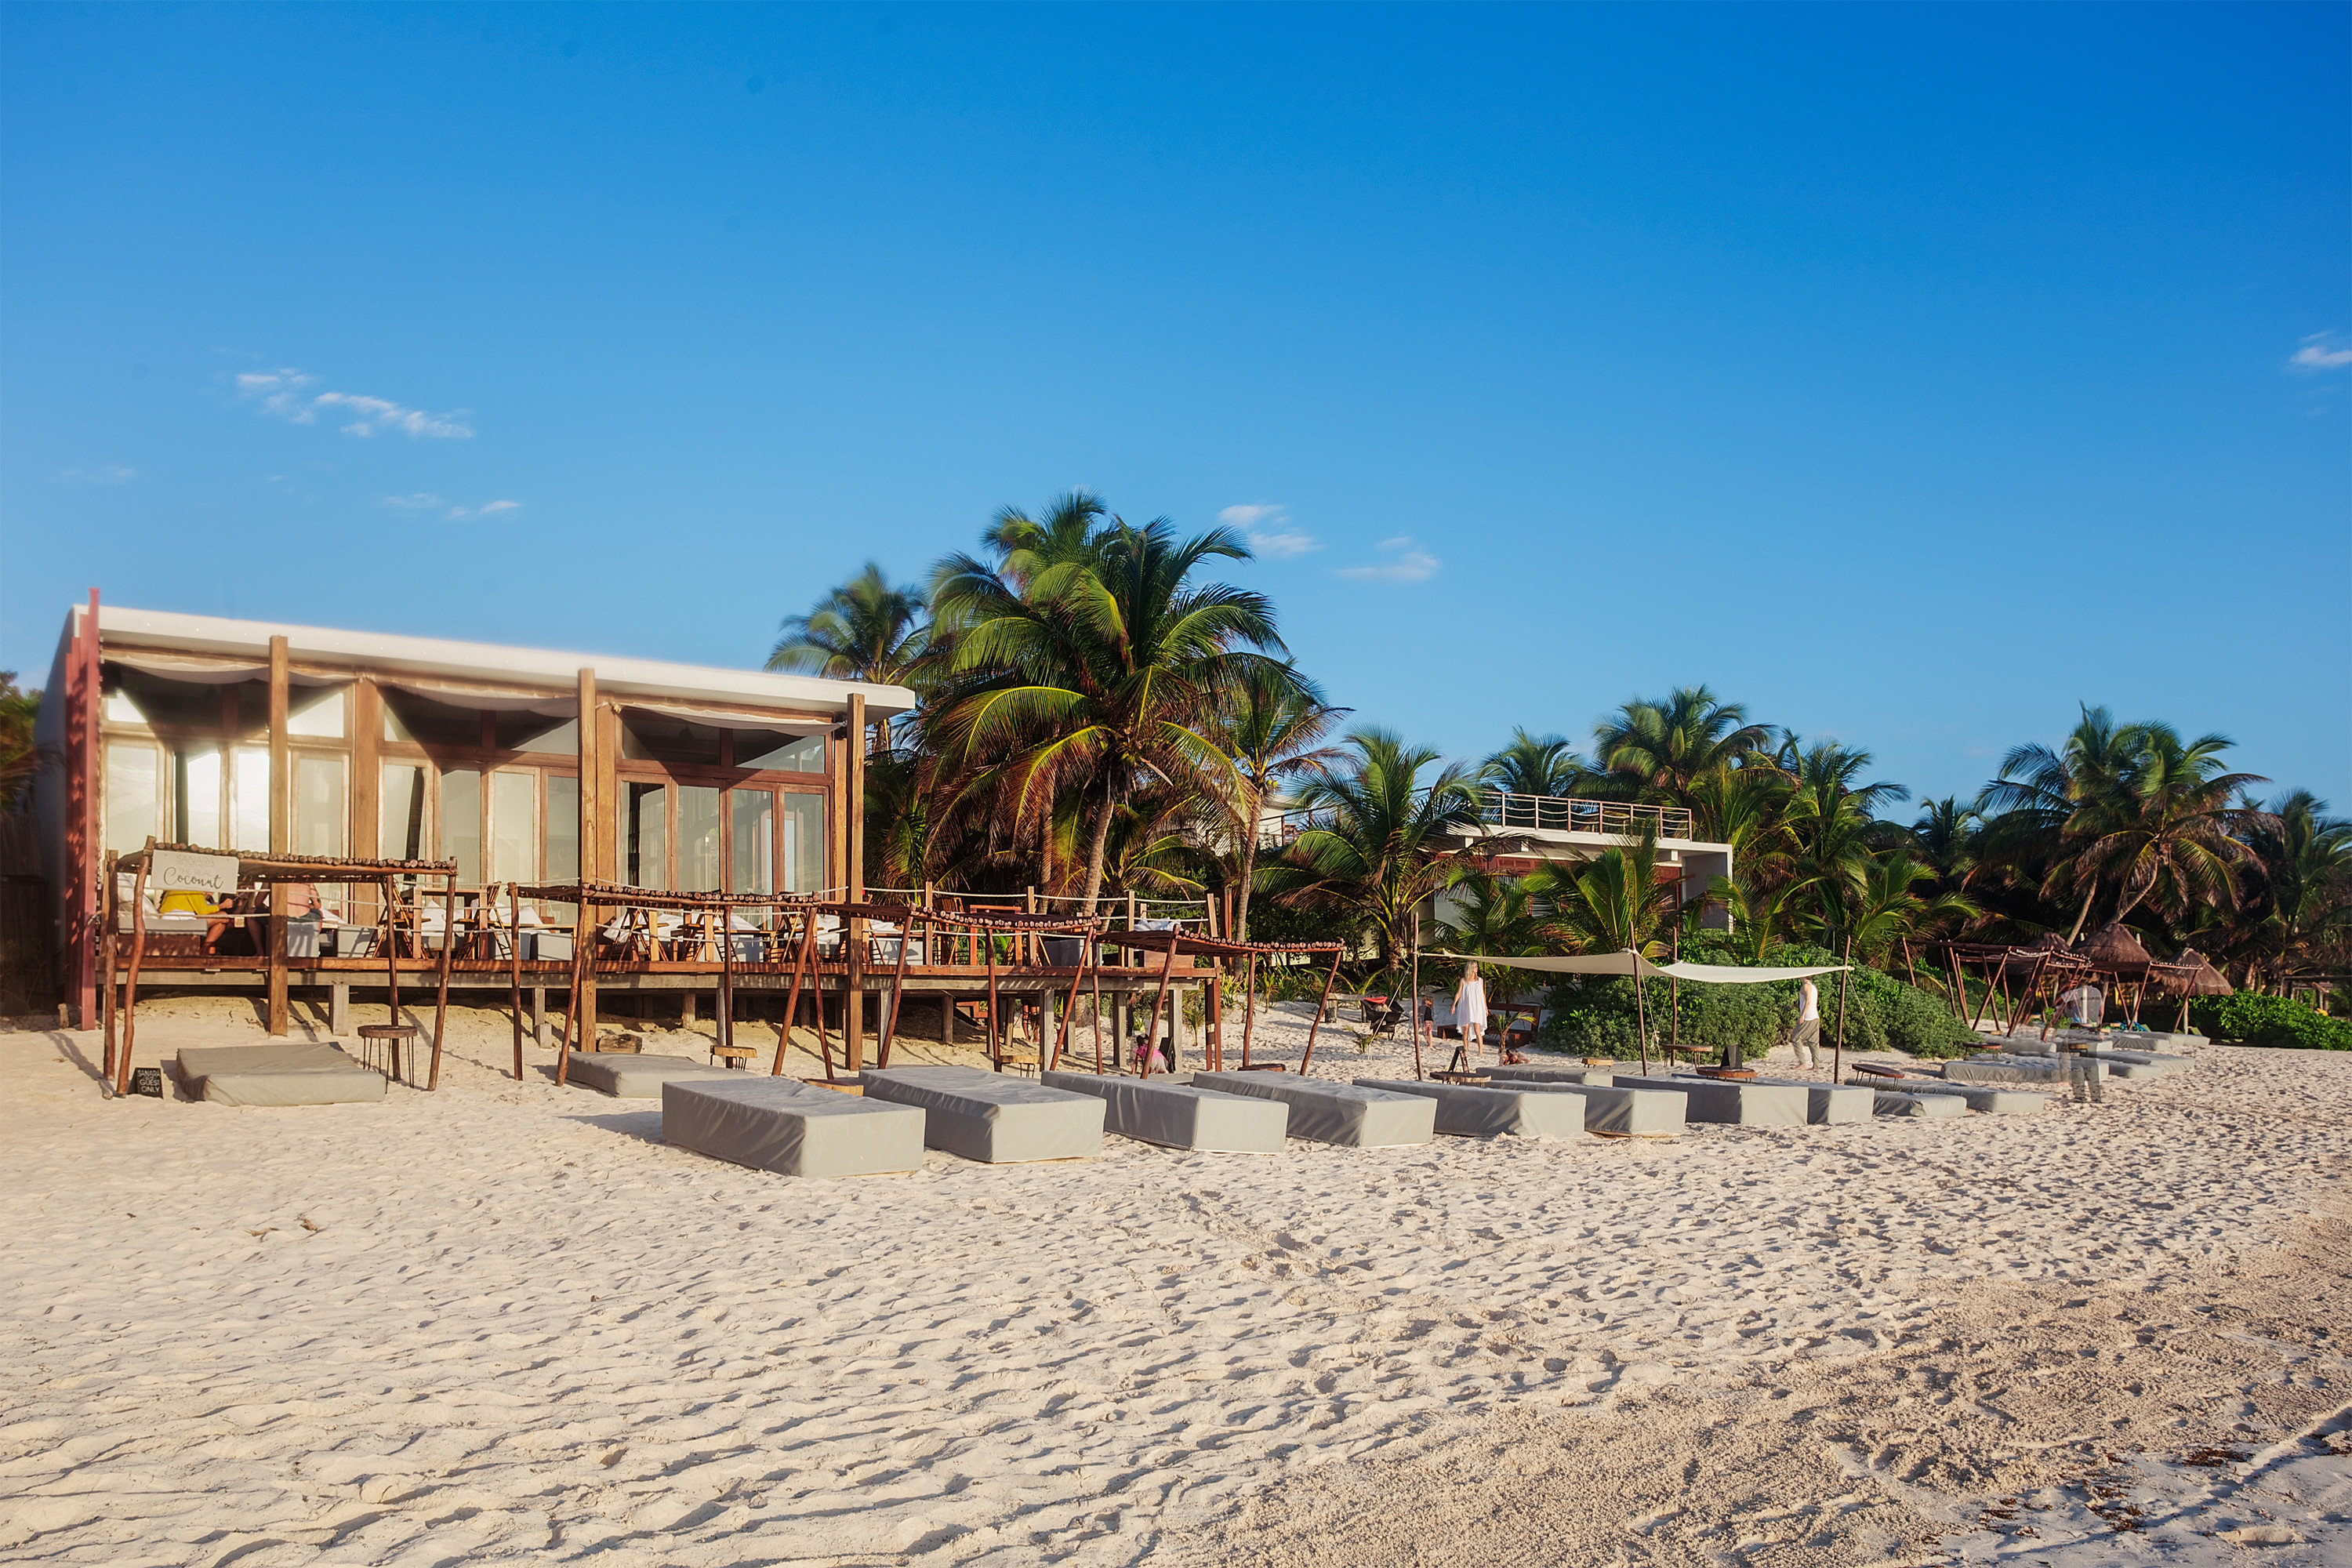 Boutique Hotels Hotels Mexico Tulum outdoor sky ground Beach property Resort walkway vacation boardwalk estate Sea shore sandy day several